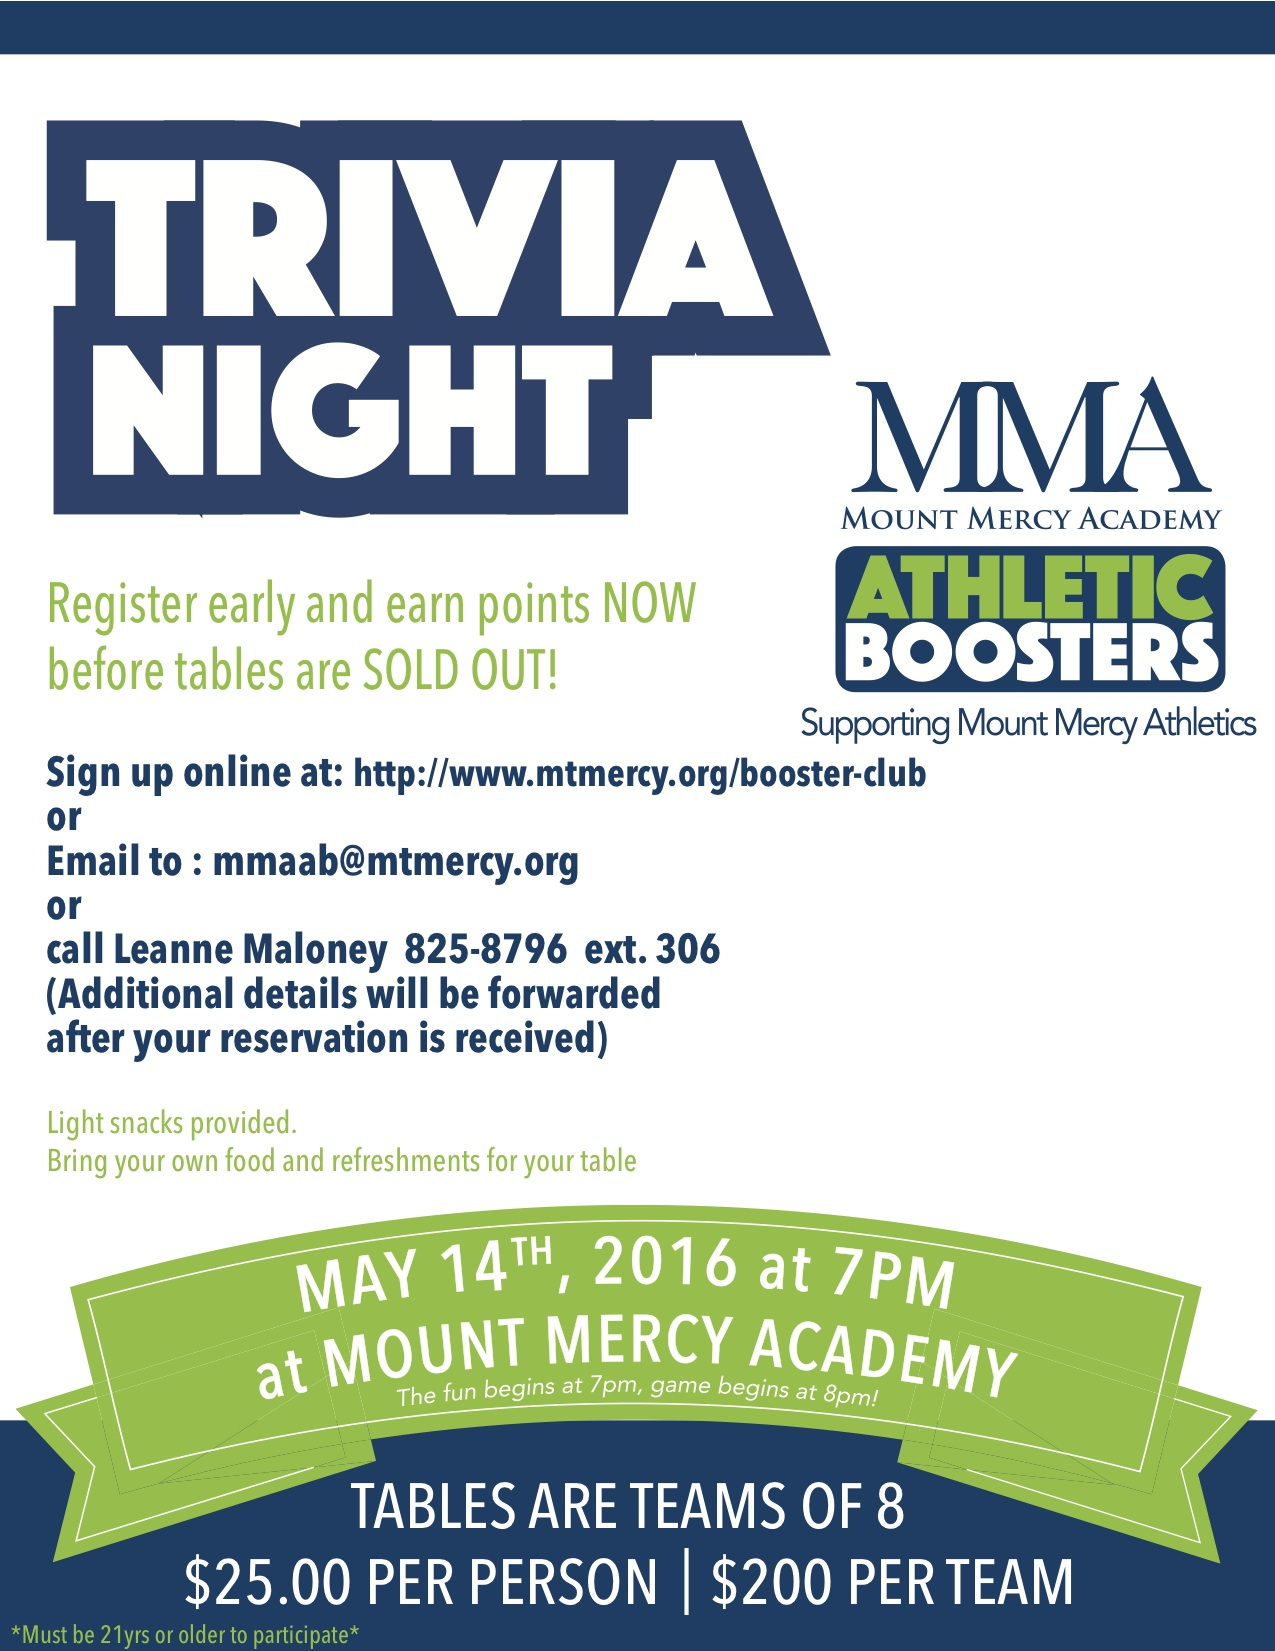 Mount Mercy Academy To Host Trivia Night Event Buffalo Scoop